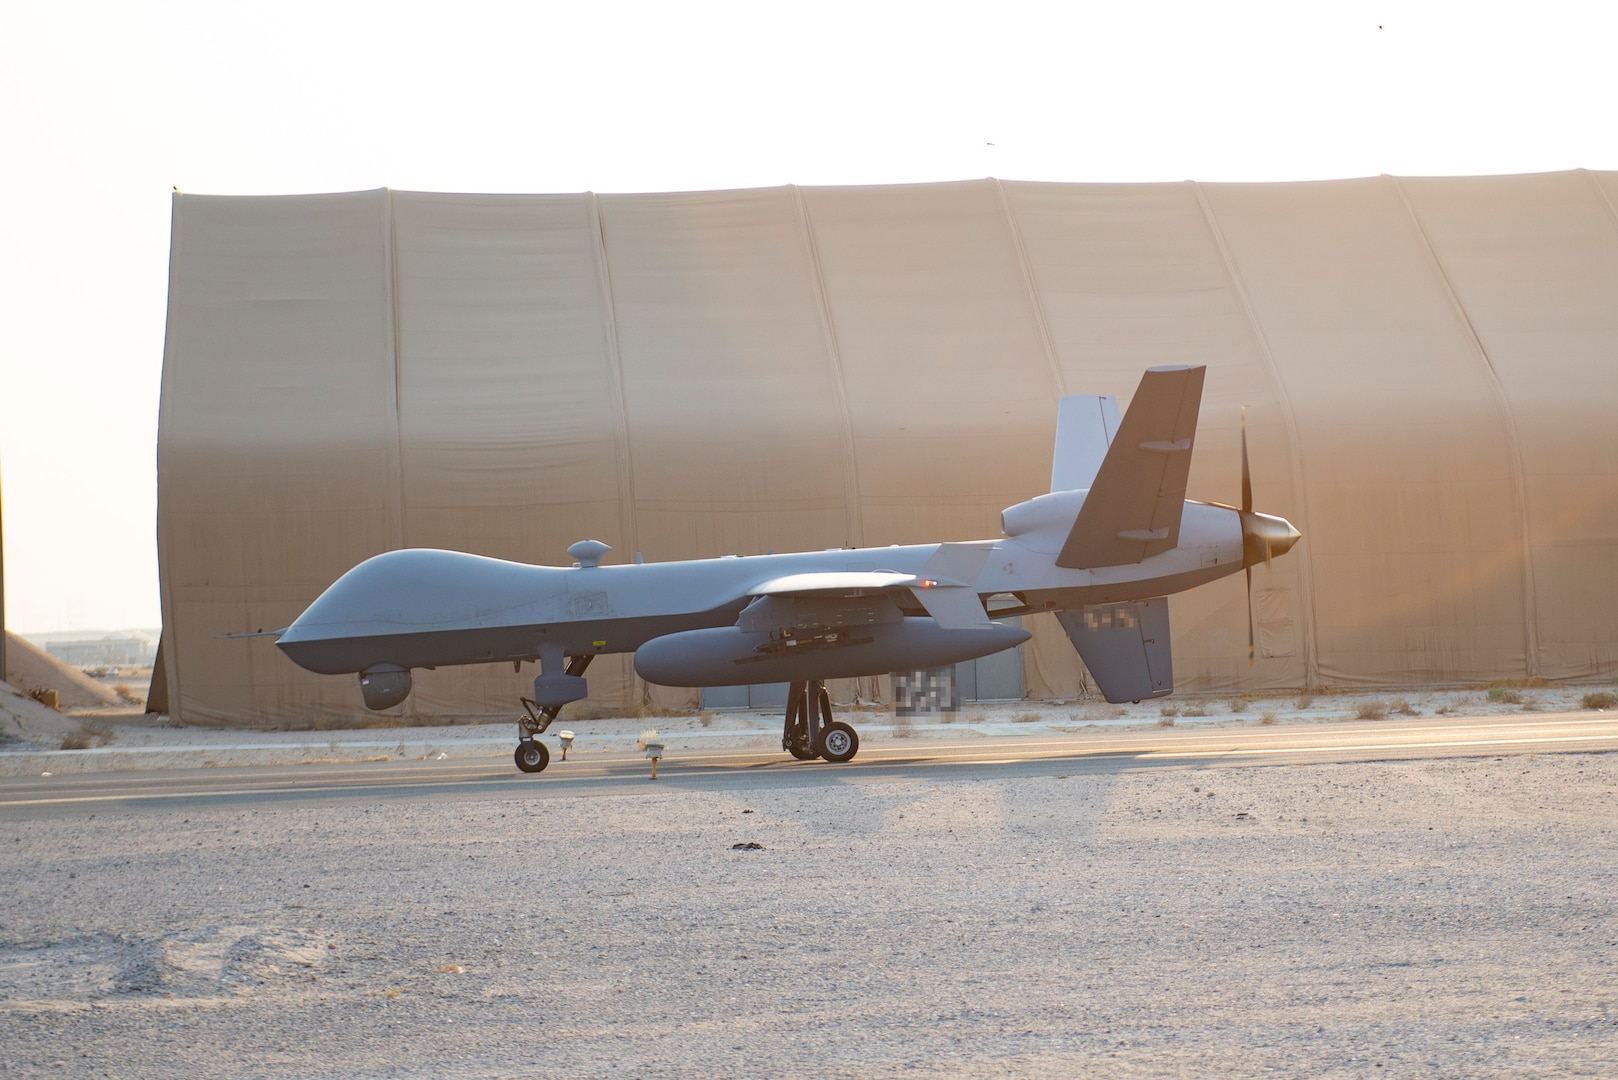 An MQ-9 Reaper taxis at Ali Al Salem Air Base, Kuwait, Aug. 20, 2021. The MQ-9 reaper is capable of carrying munitions, following high value targets for days at a time, has an extended loiter time and can be piloted mostly by itself. (U.S. Air Force Illustration by Senior Airman Helena Owens)